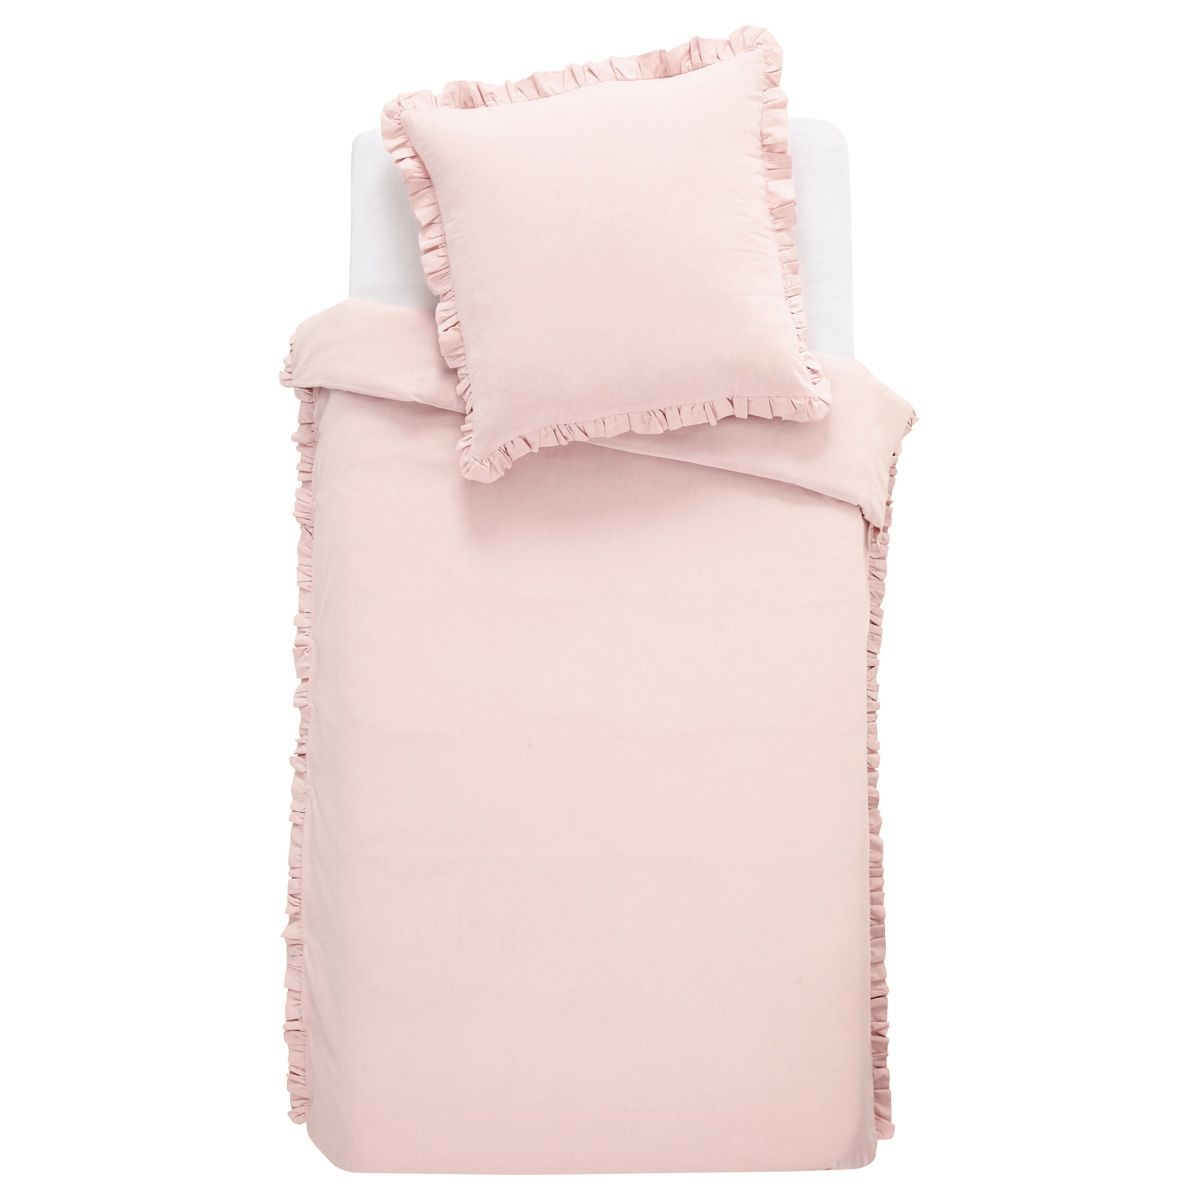 Copripiumino Maison Du Monde.Bambini Cotton Bedding Sets Baby Deco Pink Room